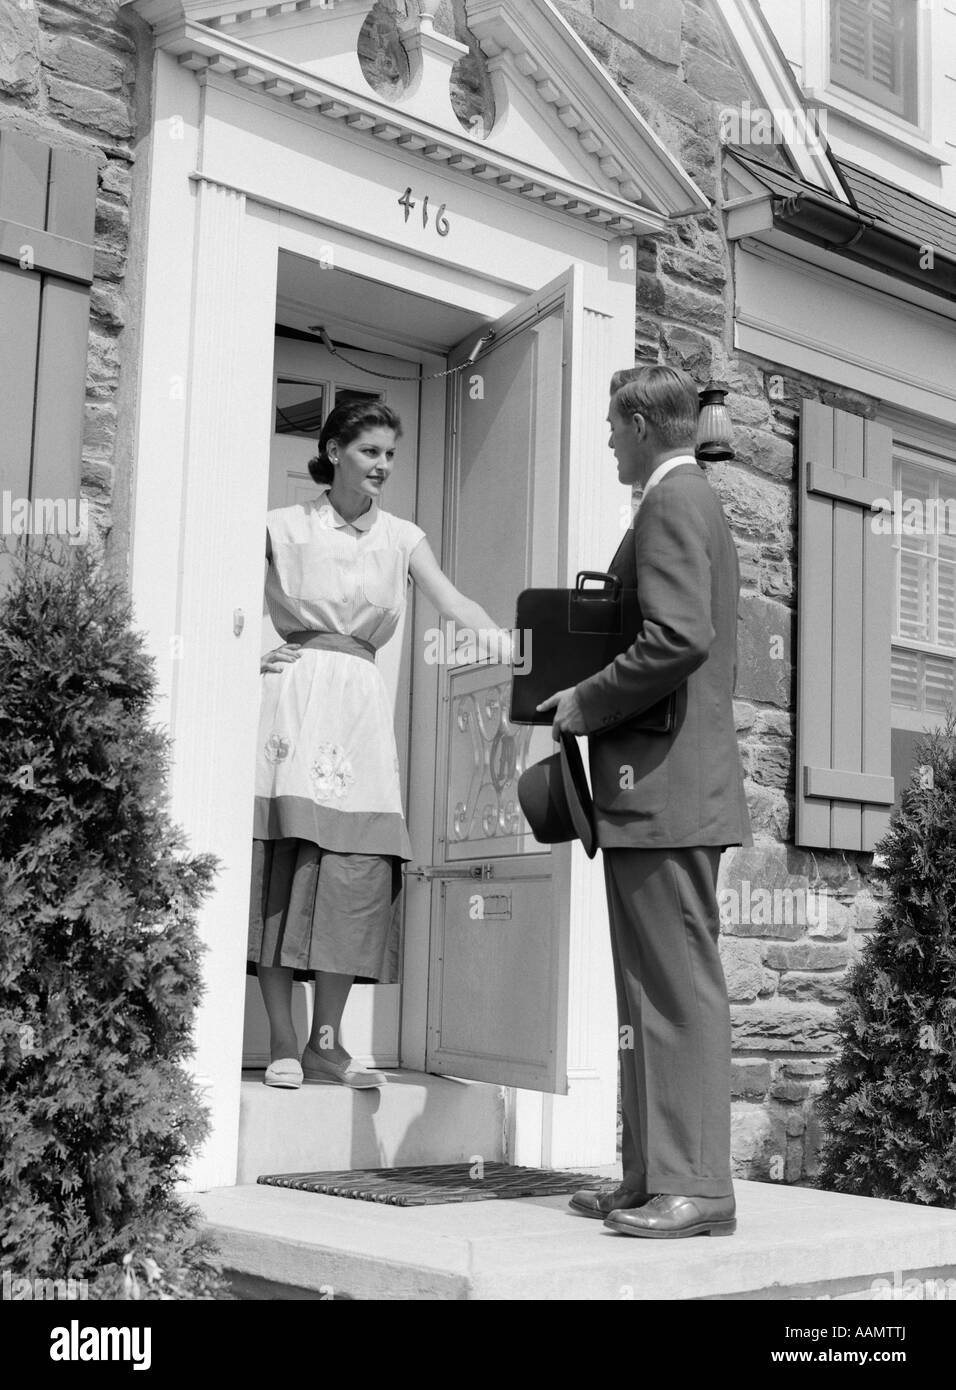 1950s salesman at door talking to housewife stock photo for Door to door salesman